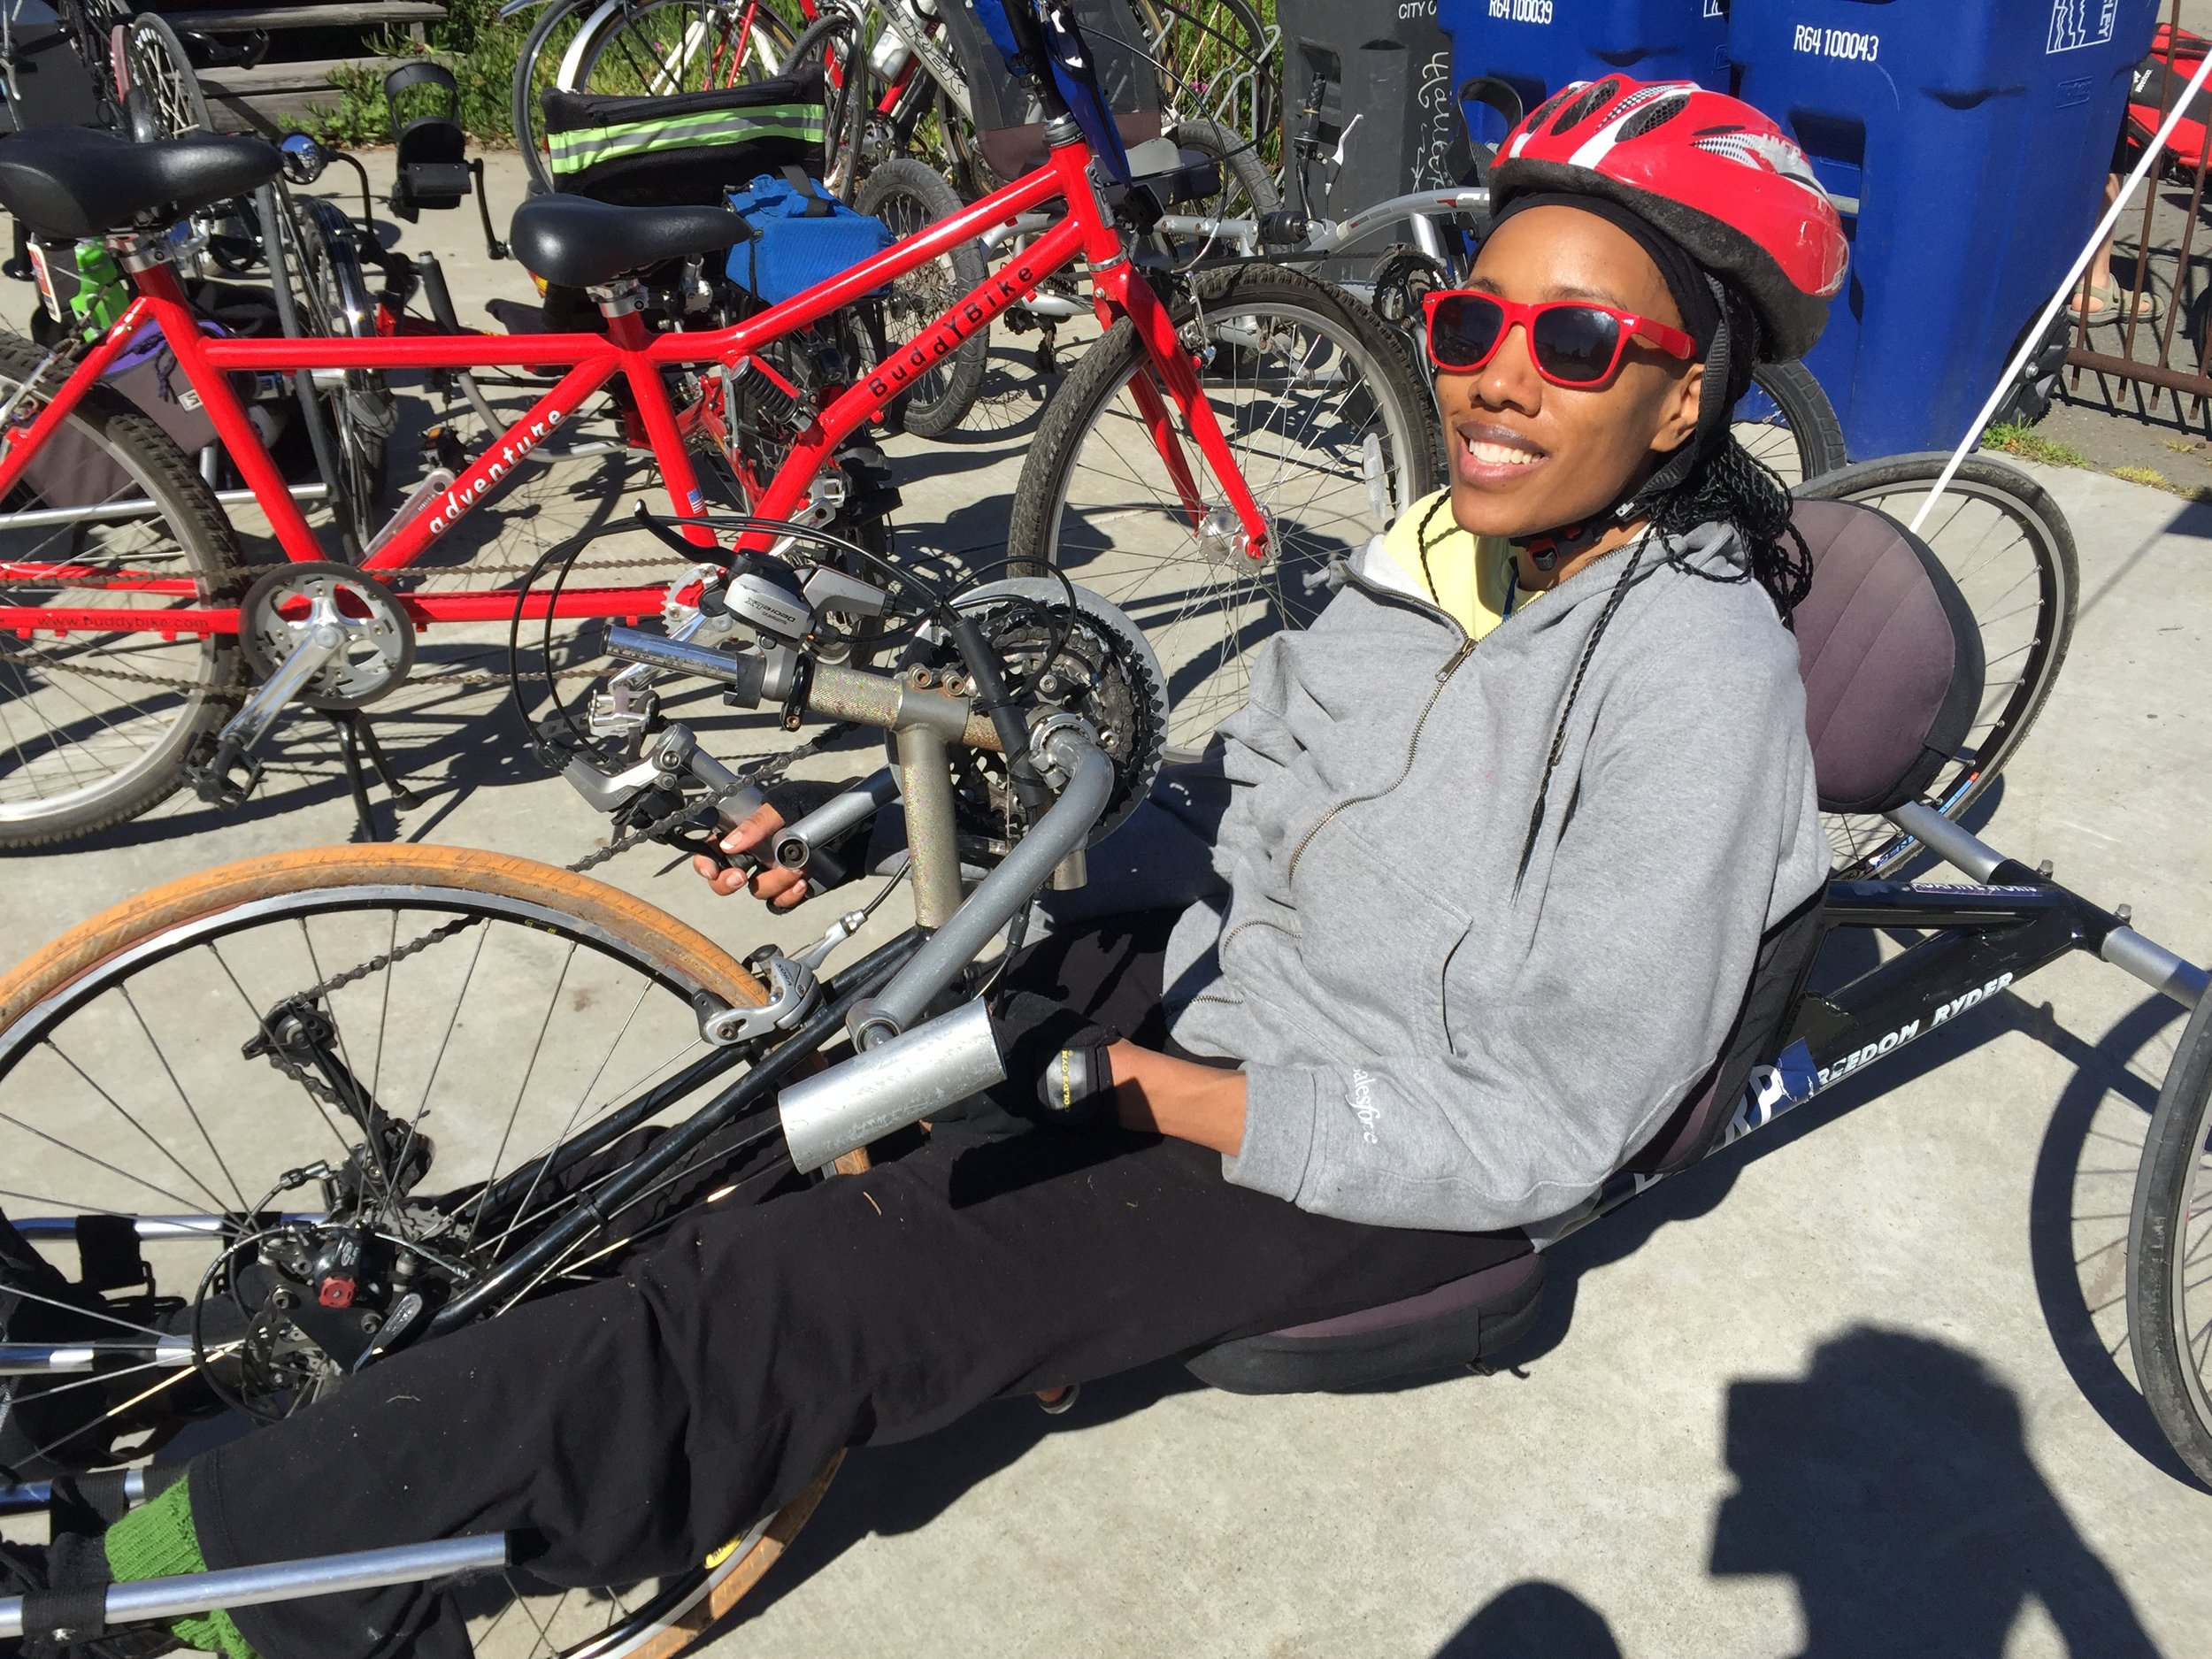 Our Mission - To enhance independence and build community through outdoor adaptive cycling.